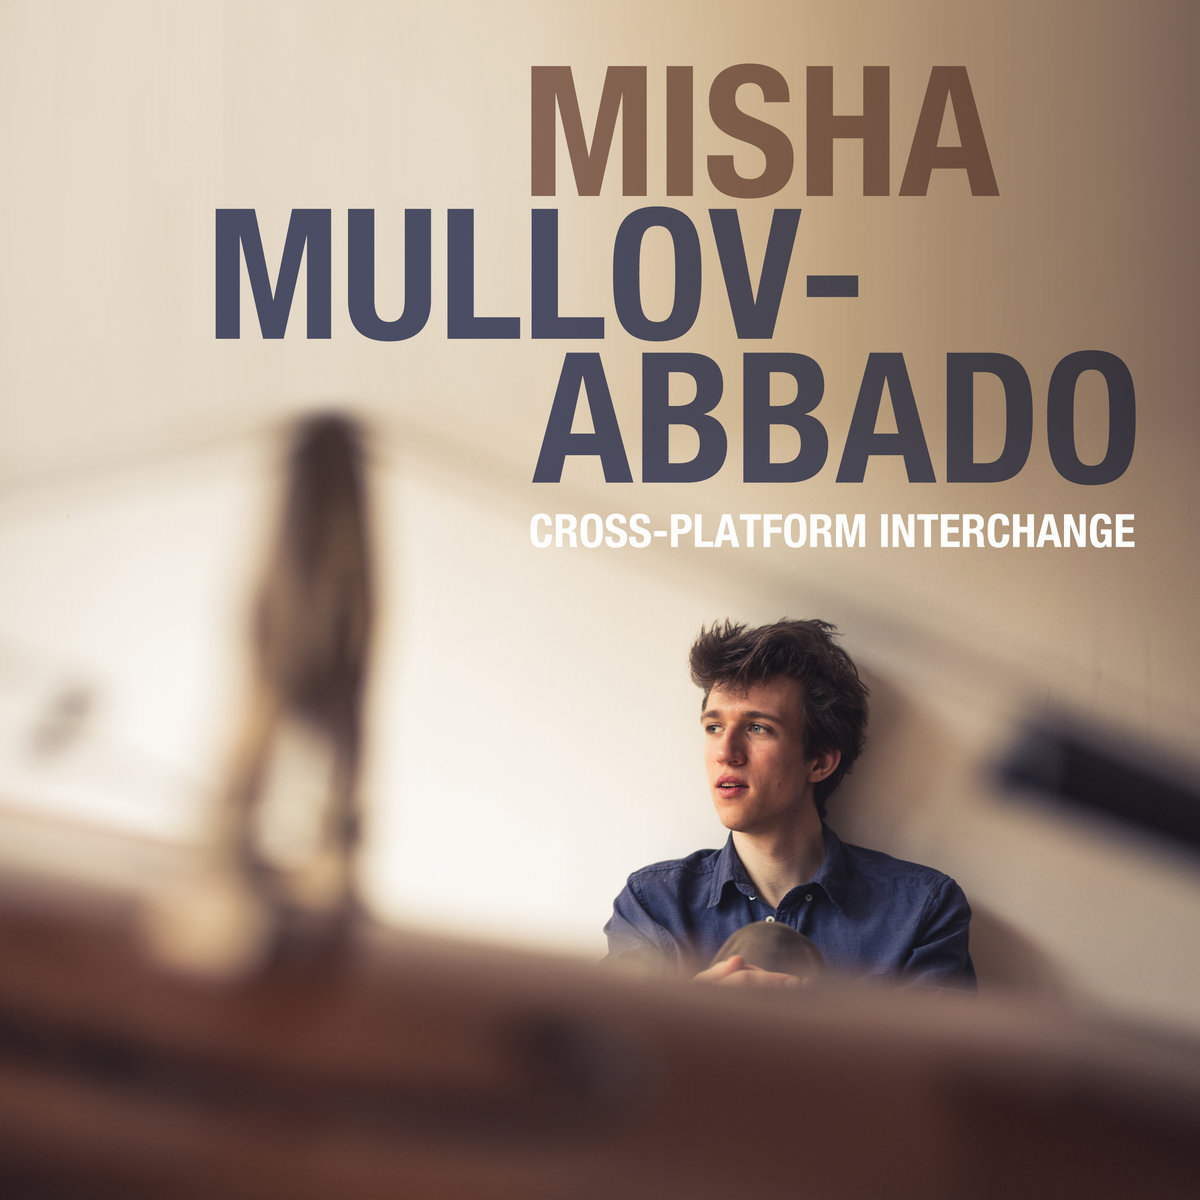 Image result for cross-platform interchange misha mullov